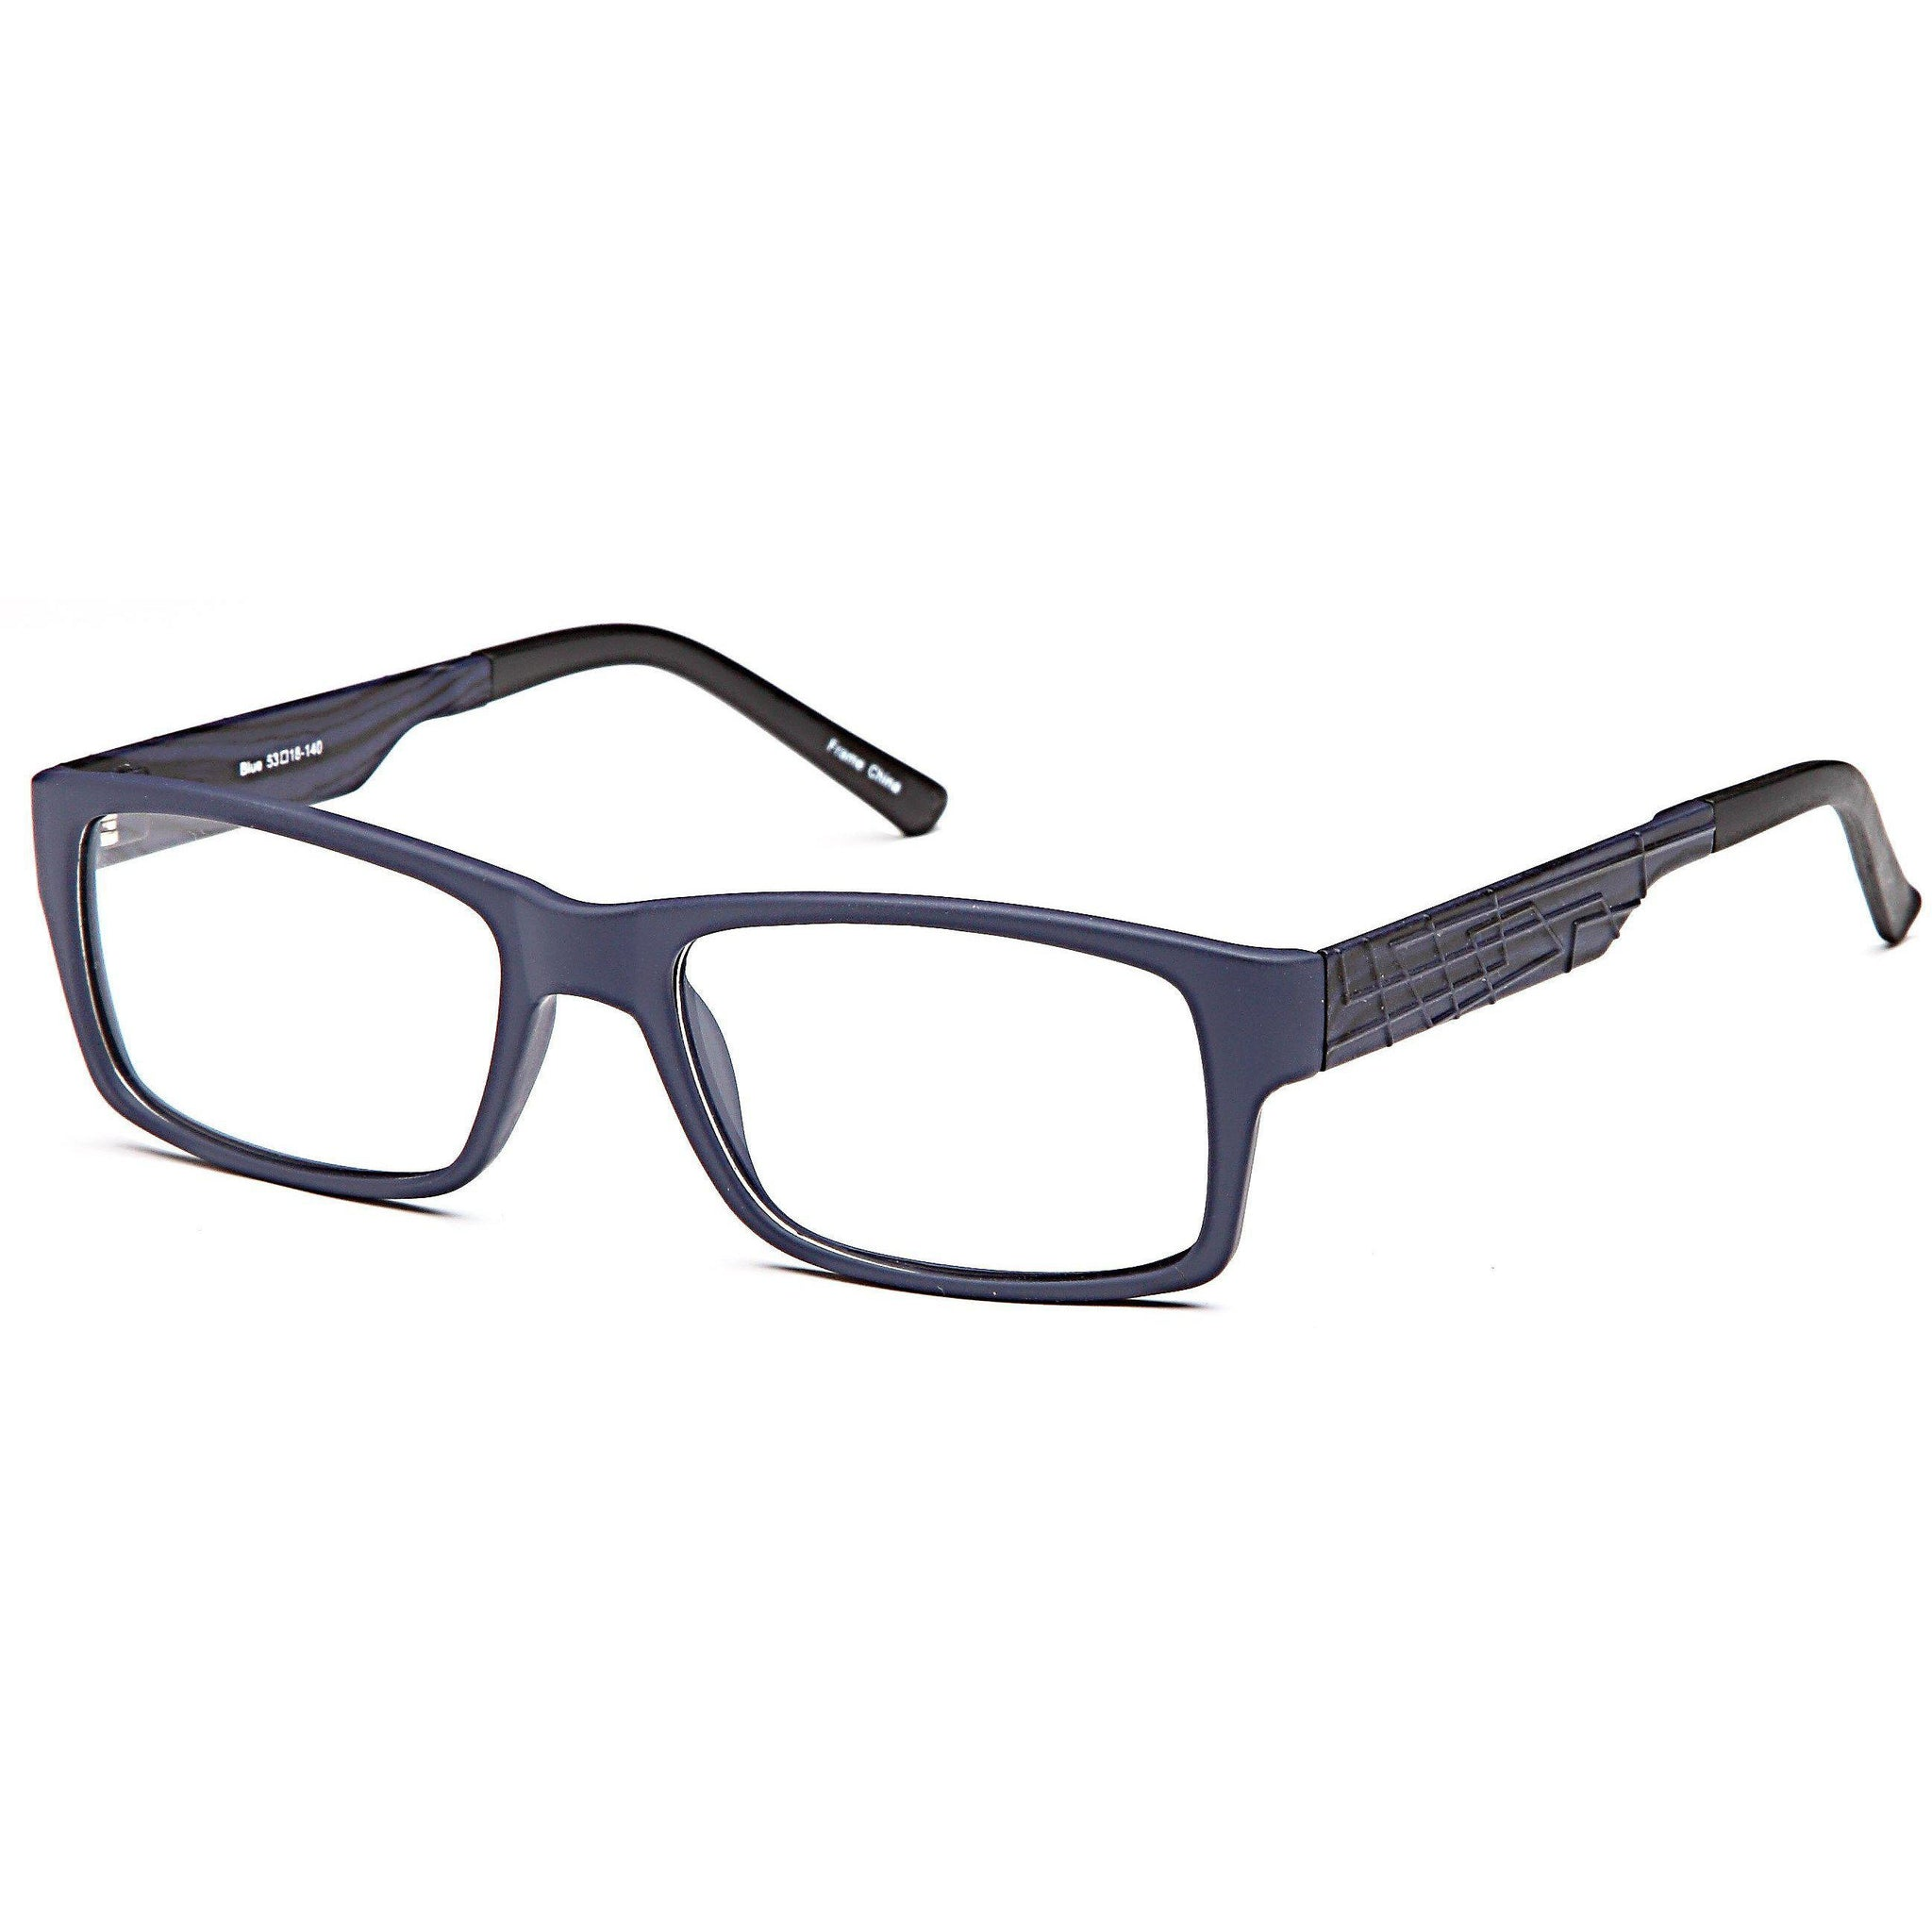 The Icons Prescription Glasses BRIAN Eyeglasses Frame